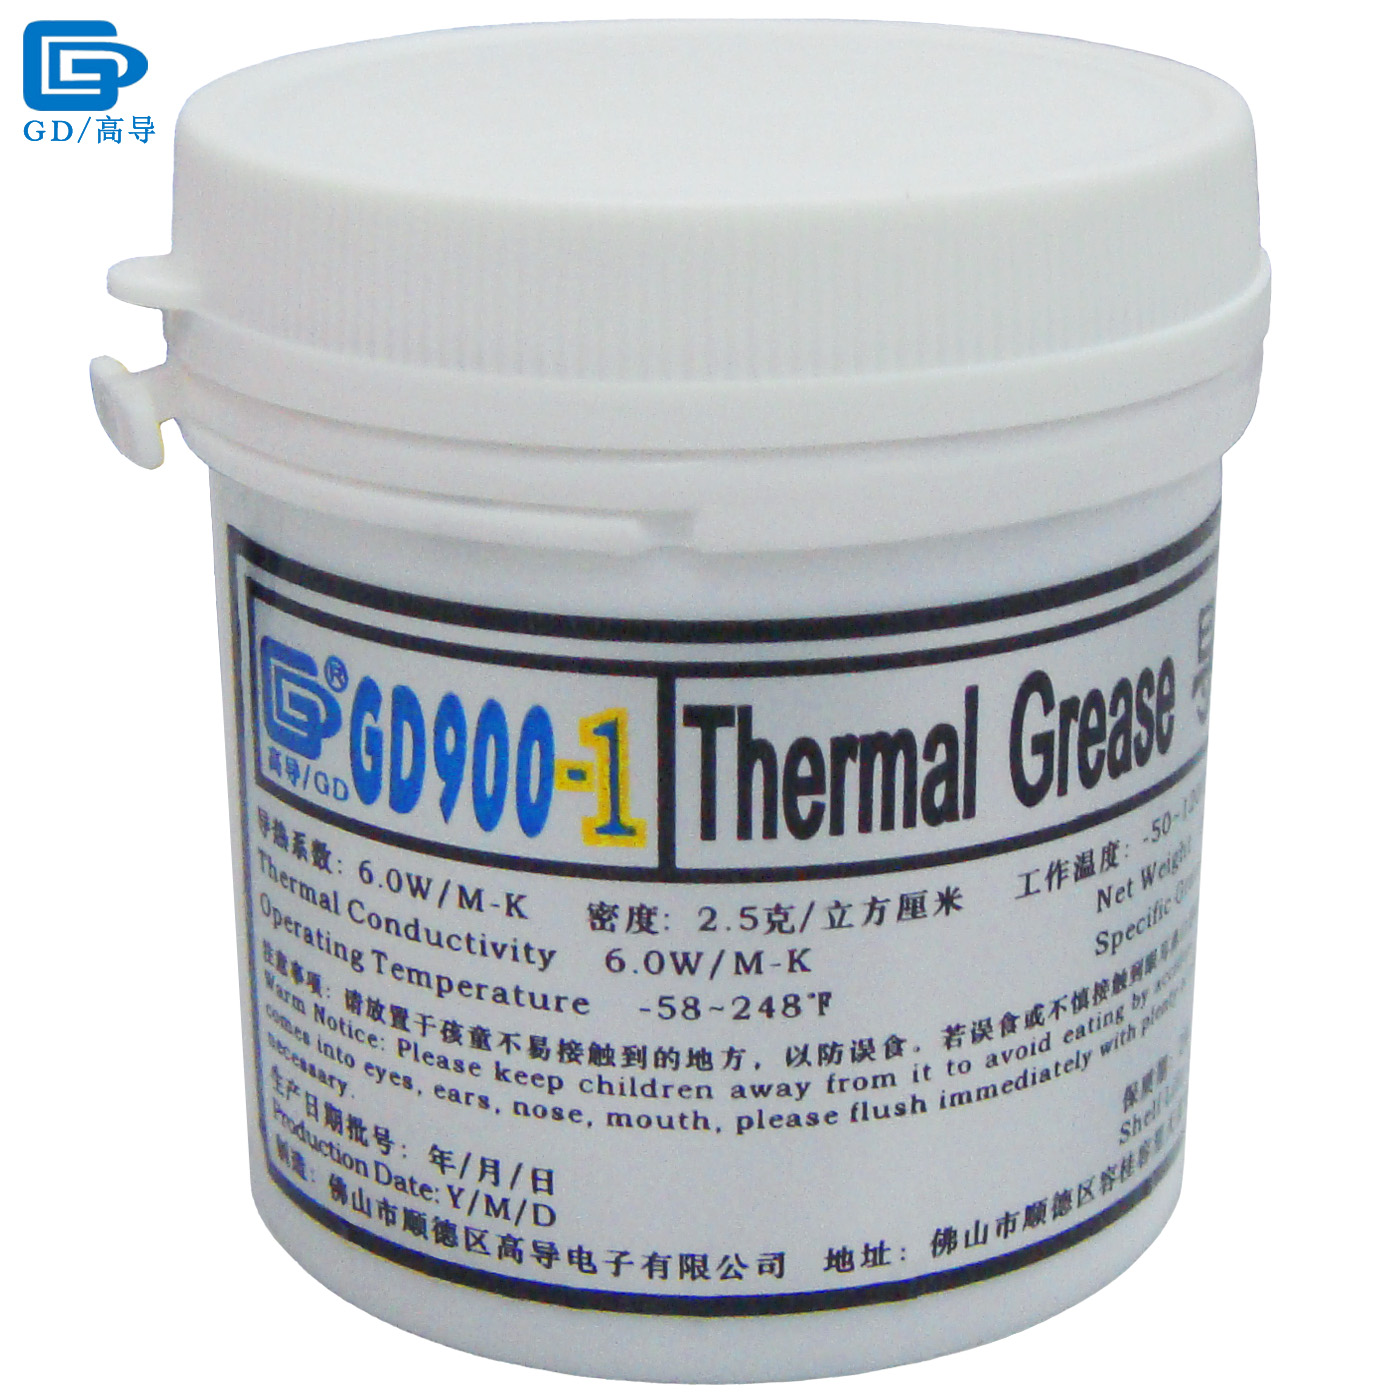 Gentle Gd Brand Thermal Grease Paste Silicone Gd900-1 Heat Sink Compound Gray Containing Silver Net Weight 150 Grams For Cpu Led Cn150 At All Costs Fan Cooling